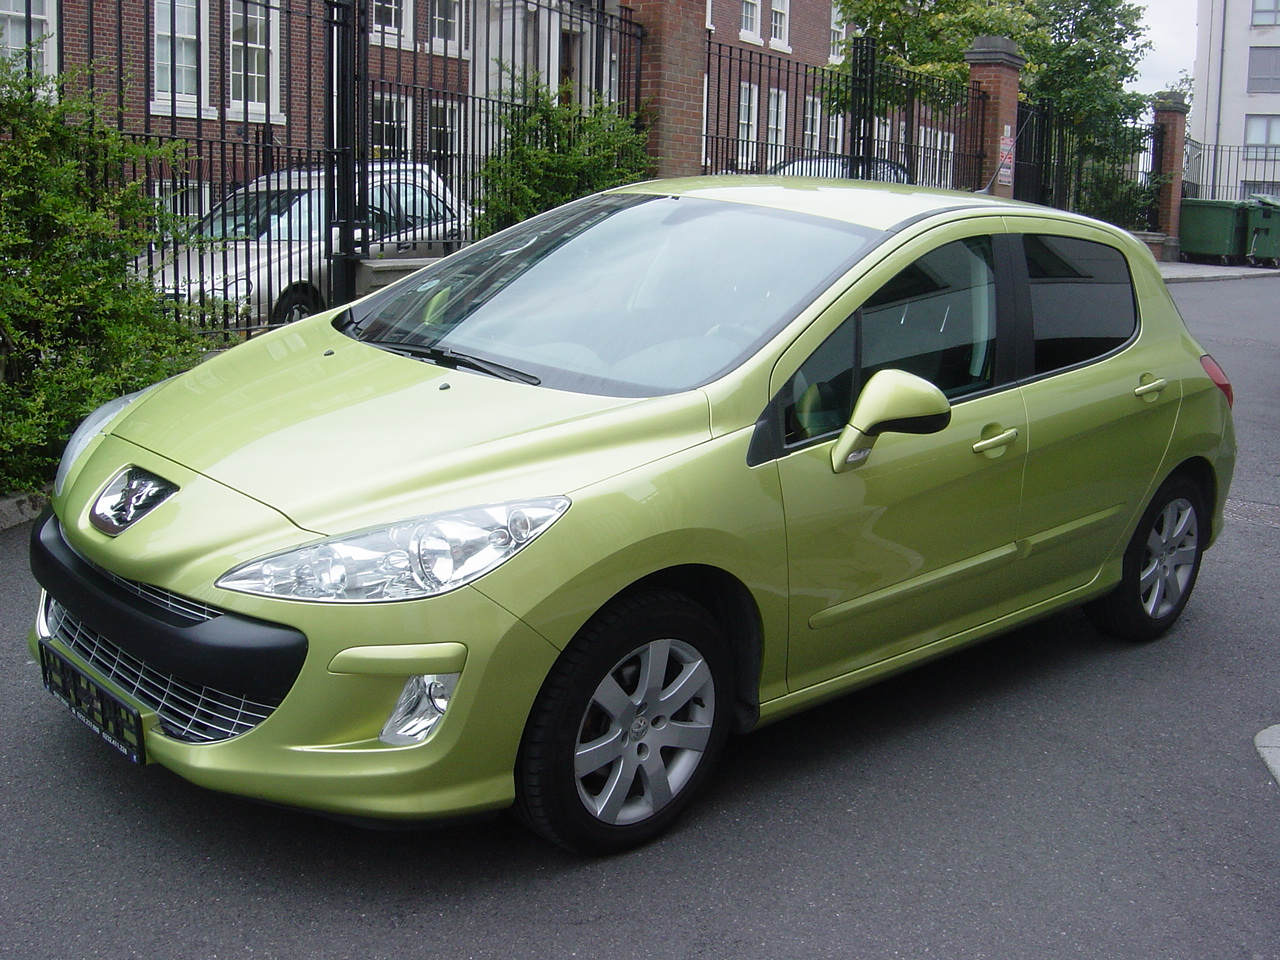 2008 peugeot 308 cc 1 6 vti automatic related infomation specifications weili automotive network. Black Bedroom Furniture Sets. Home Design Ideas